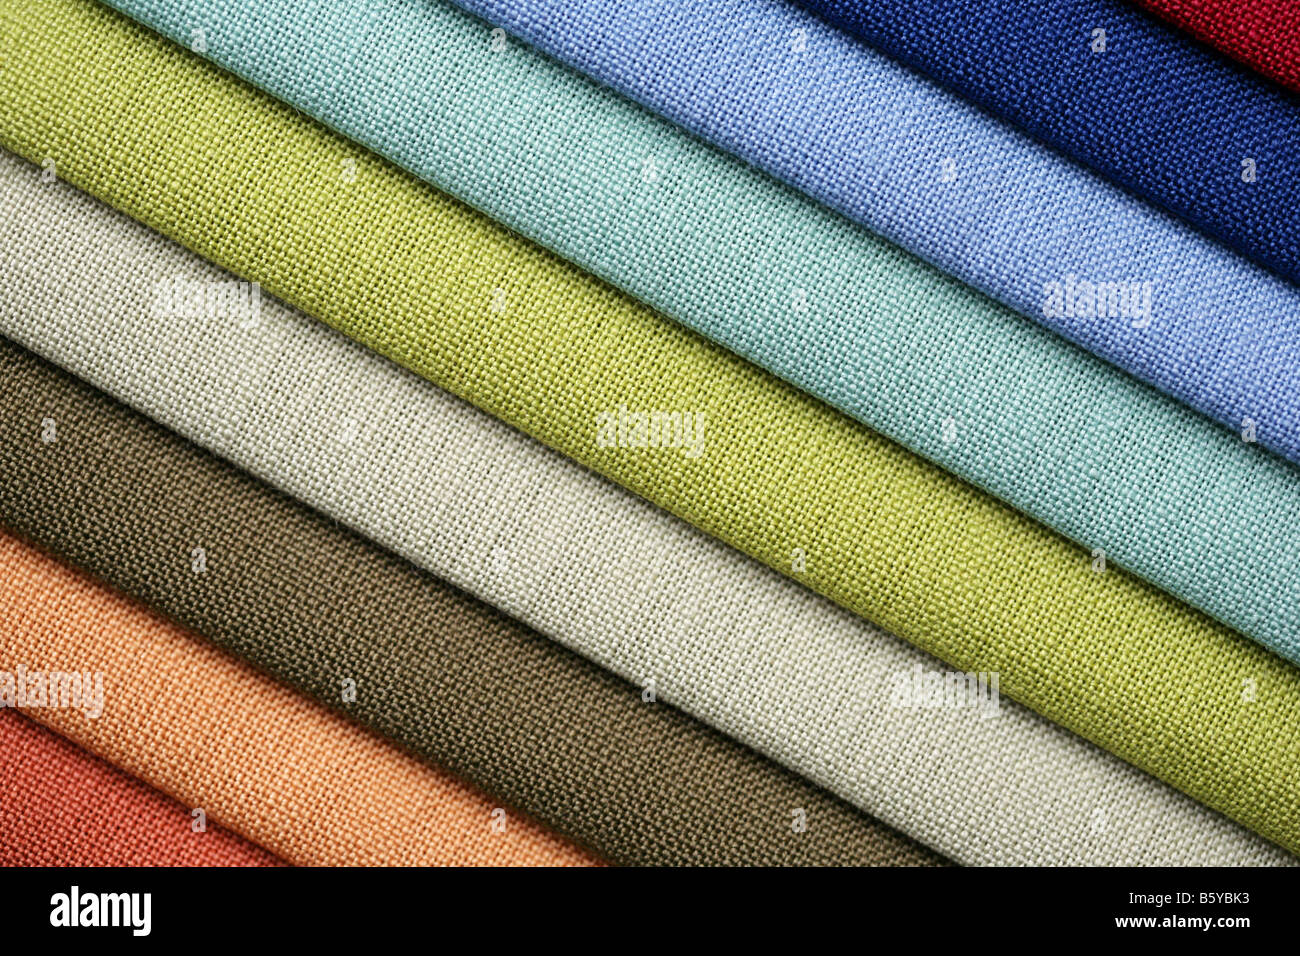 fabric in shop - Stock Image